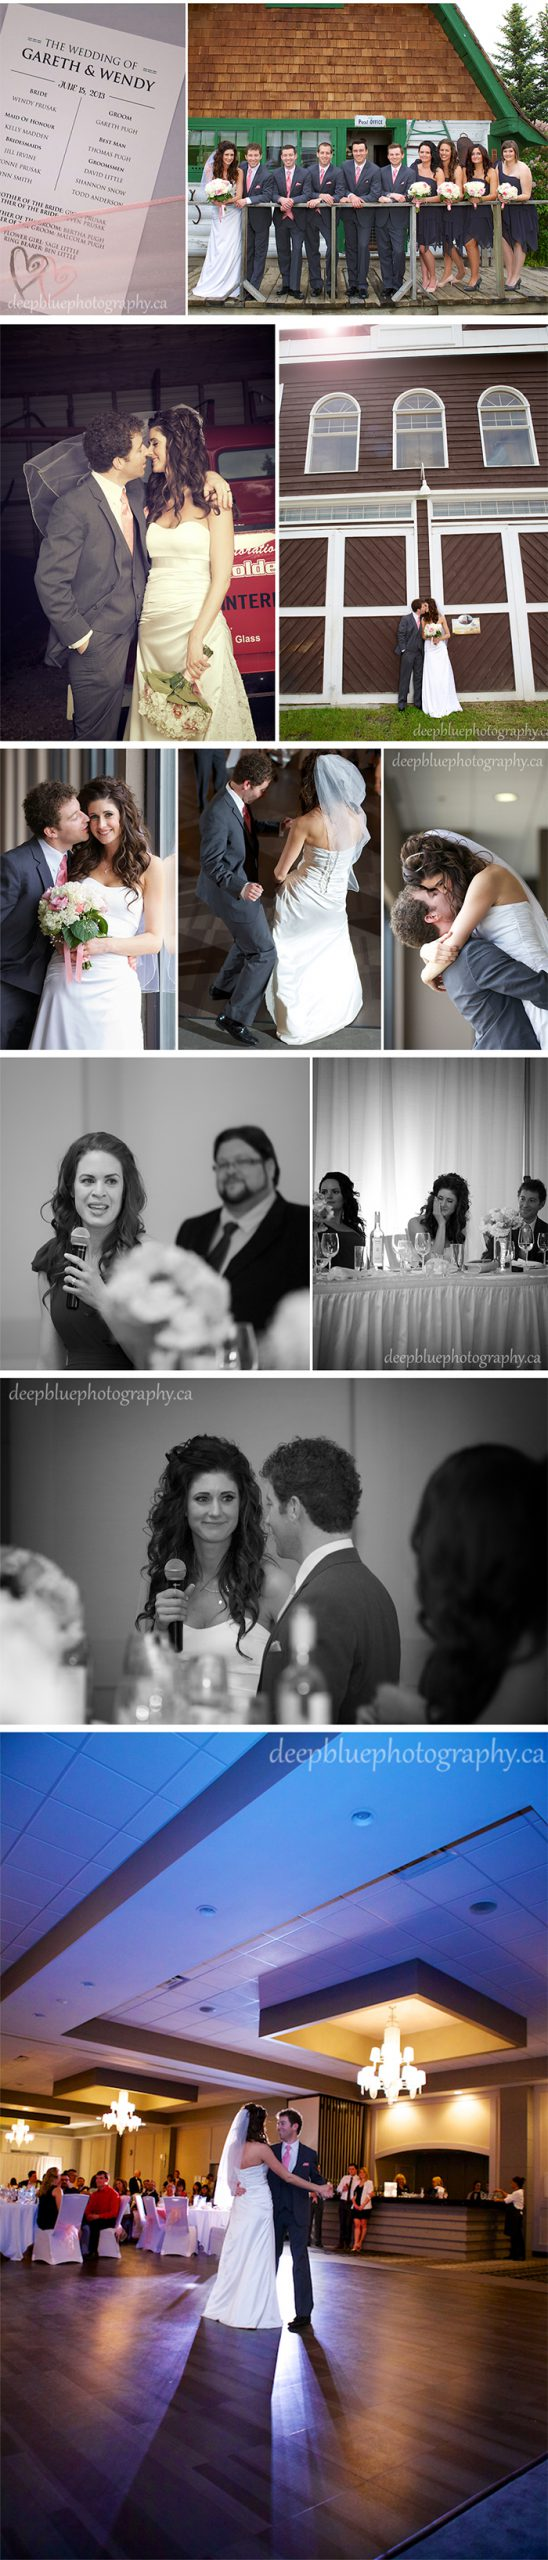 Photographs from the Wedding Reception and Dance Grande Prairie Wedding Photography